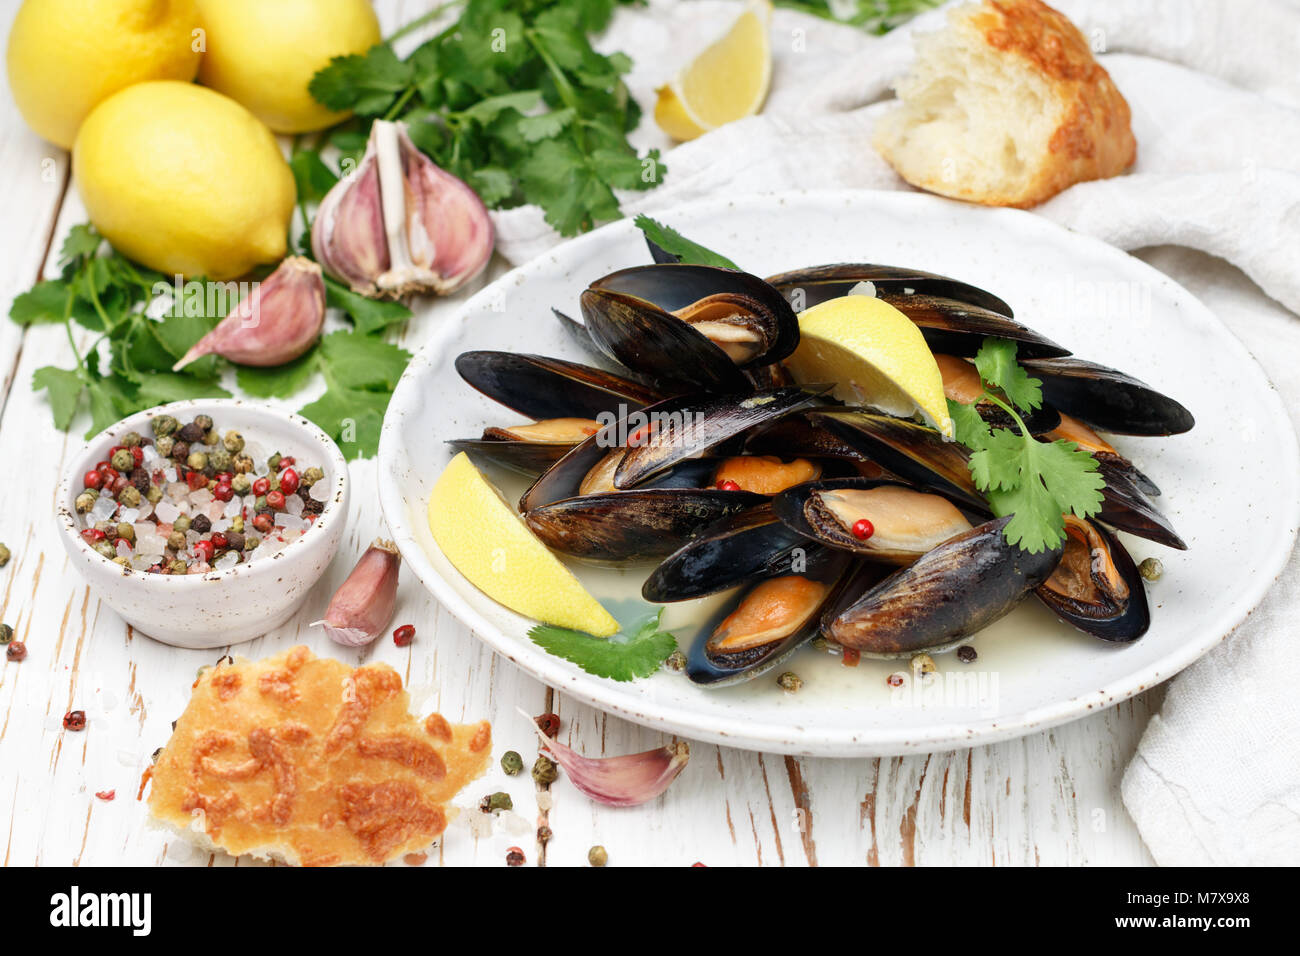 Delicious mussels in white wine with lemon, garlic, herbs and spices in a white plate. Baguette, Cilantro and pepper. - Stock Image